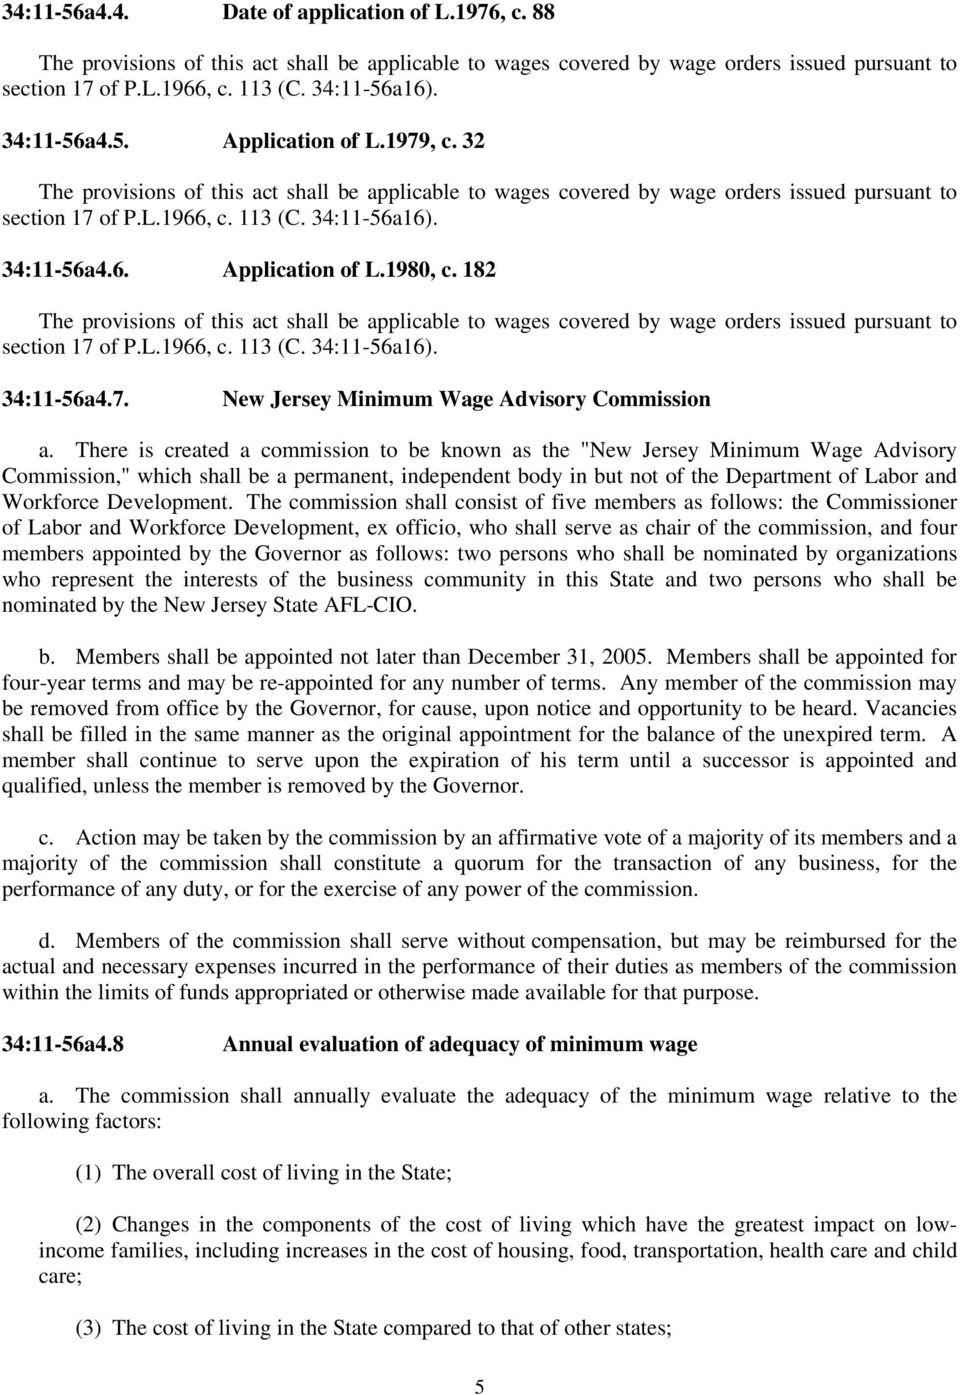 34:11-56a4.6. Application of L.1980, c. 182 The provisions of this act shall be applicable to wages covered by wage orders issued pursuant to section 17 of P.L.1966, c. 113 (C. 34:11-56a16).